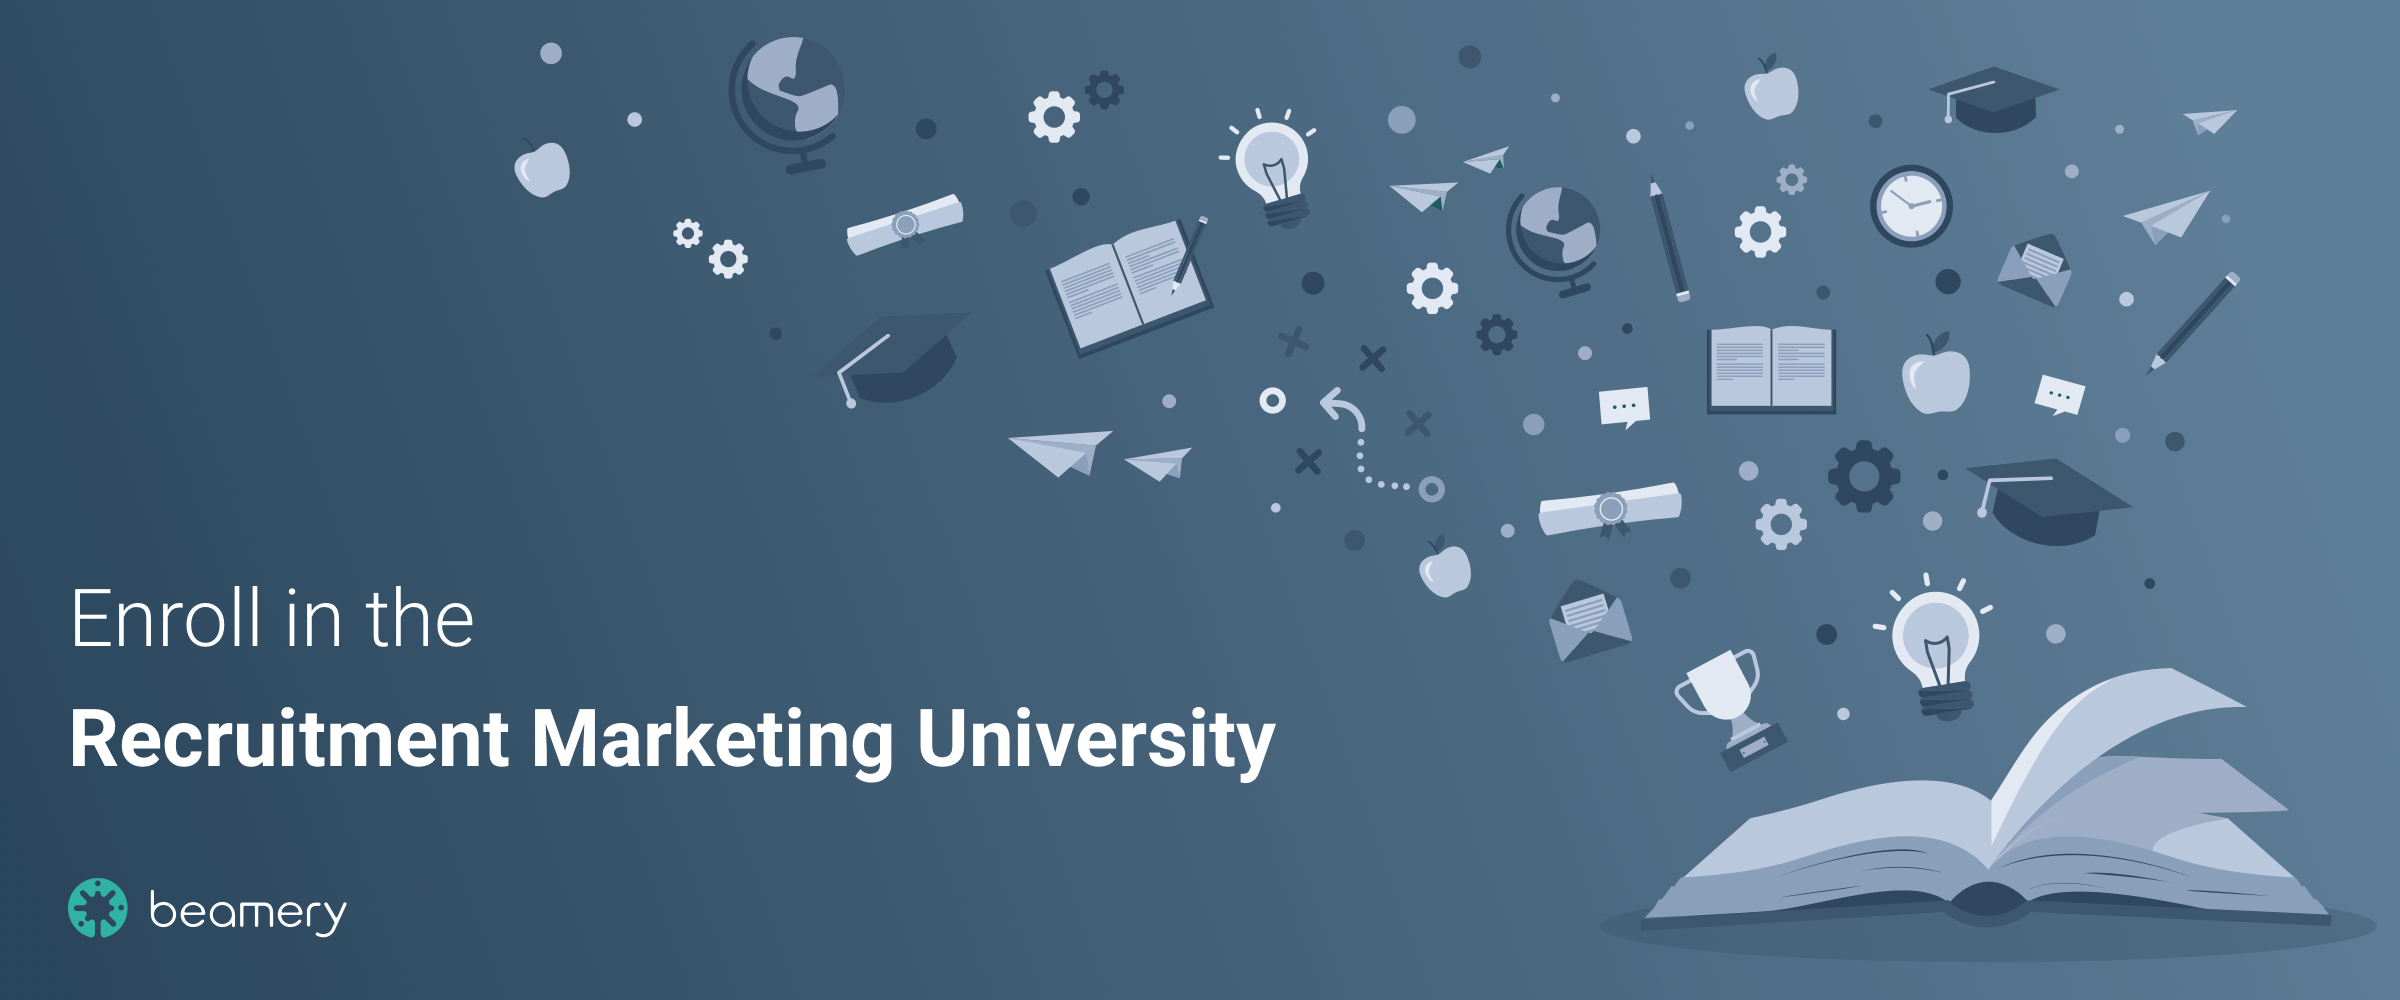 RMU Email Banner